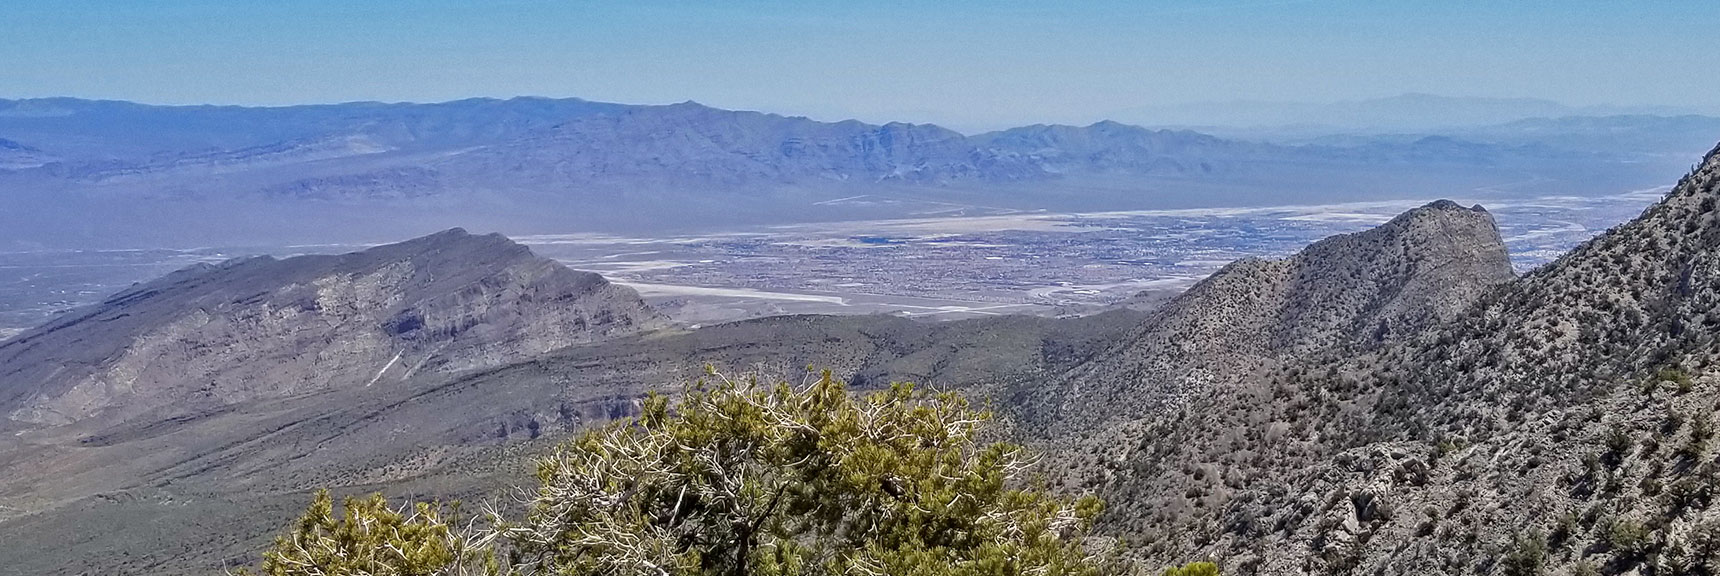 Gass Peak and Centennial Hills Viewed from the 7400ft High Point on the La Madre Mountain Nevada Northern Approach